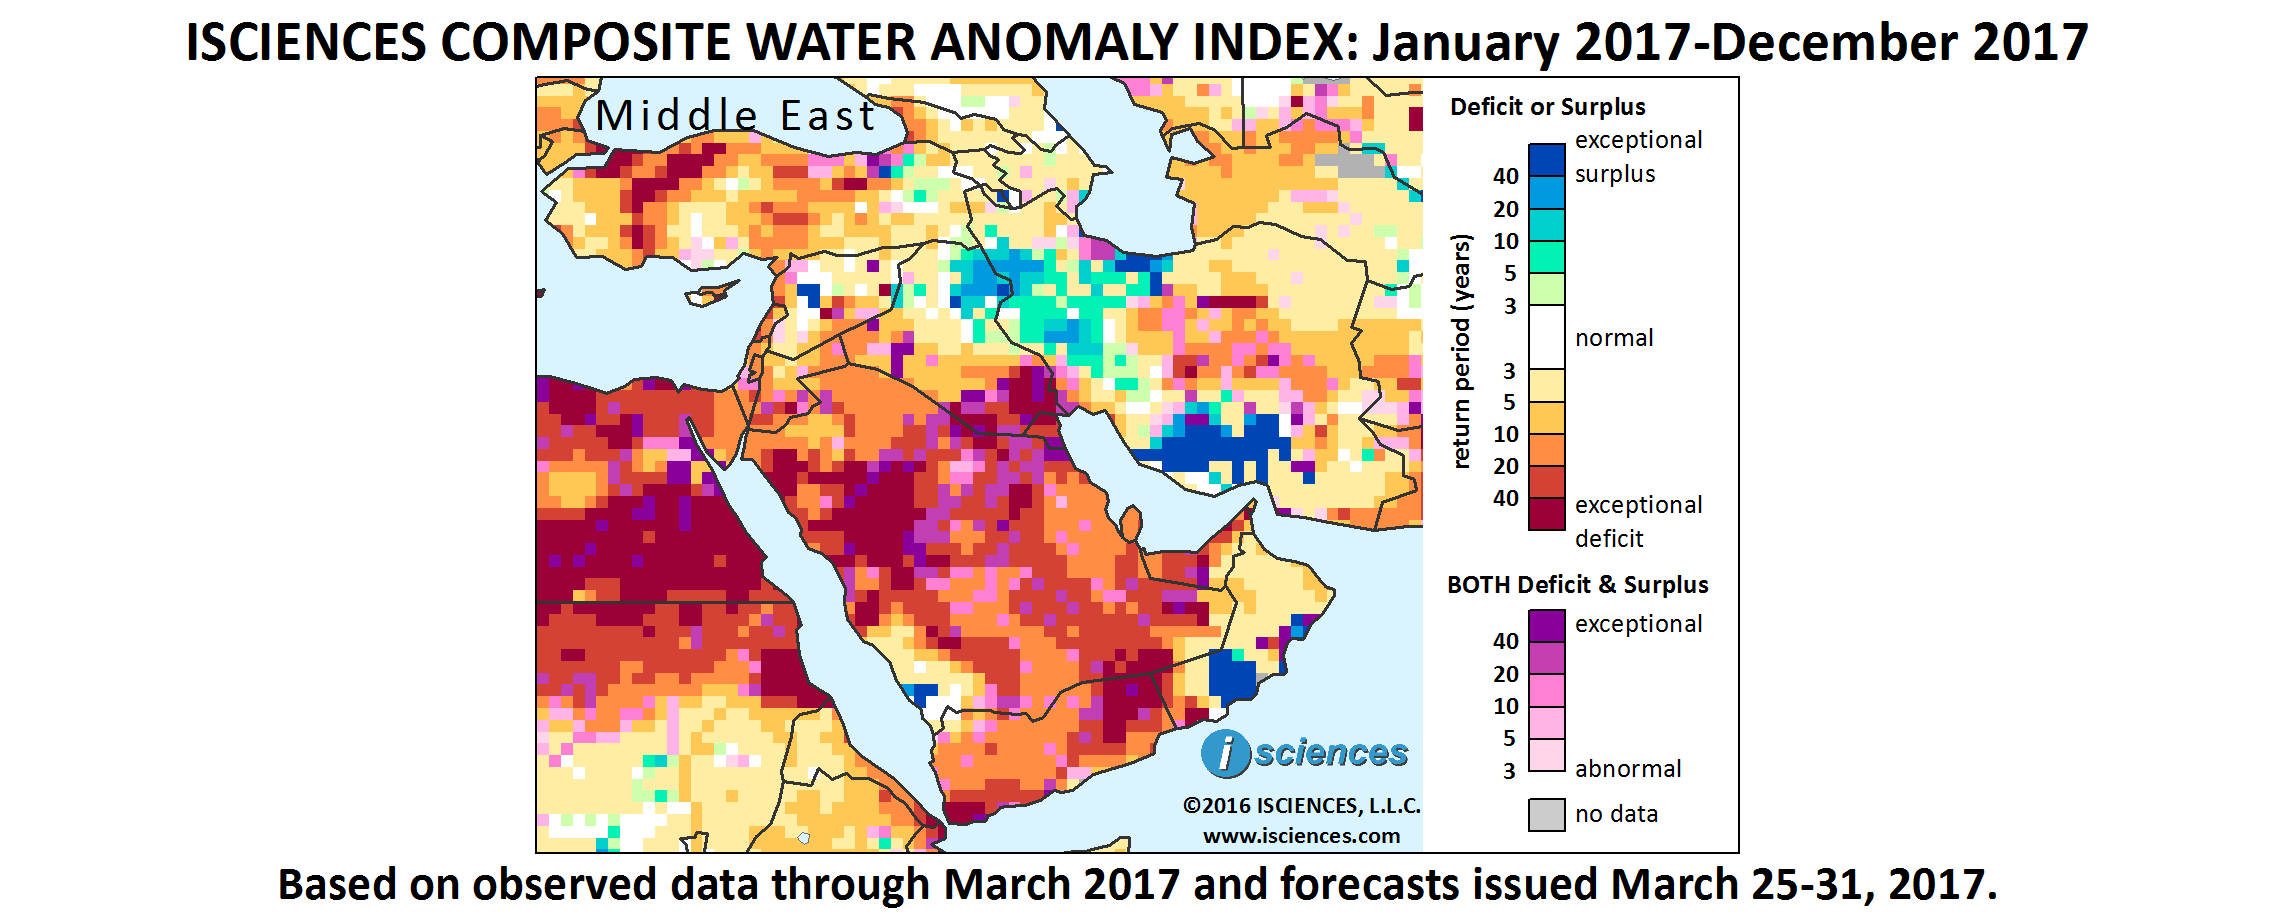 Middle East: Widespread water deficits ahead in Saudi Arabia